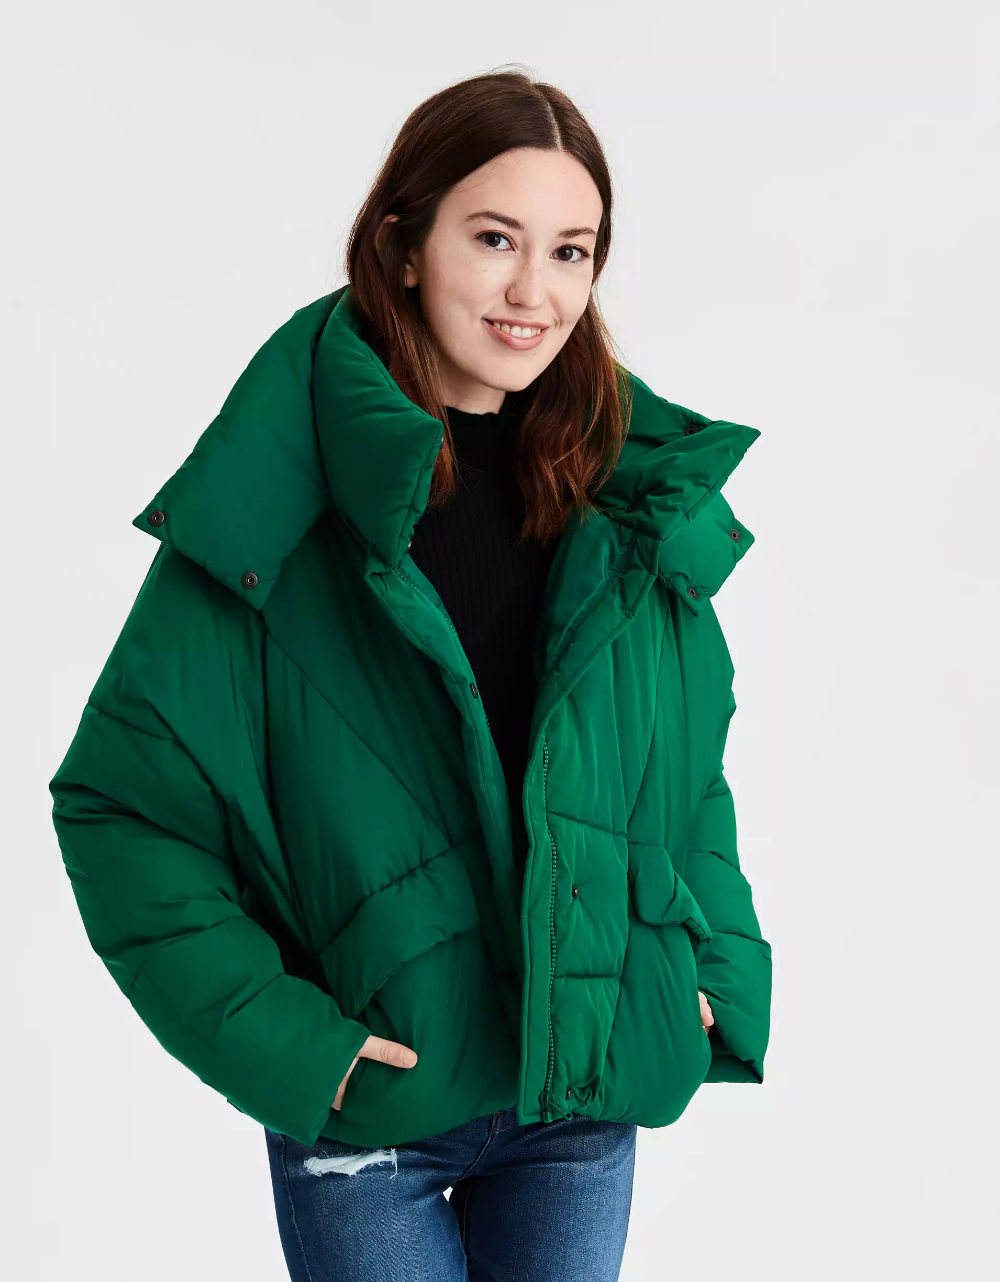 Ae 80 S Puffer Jacket Mens Outfitters Women Jeans Clothes For Women [ 1282 x 1000 Pixel ]